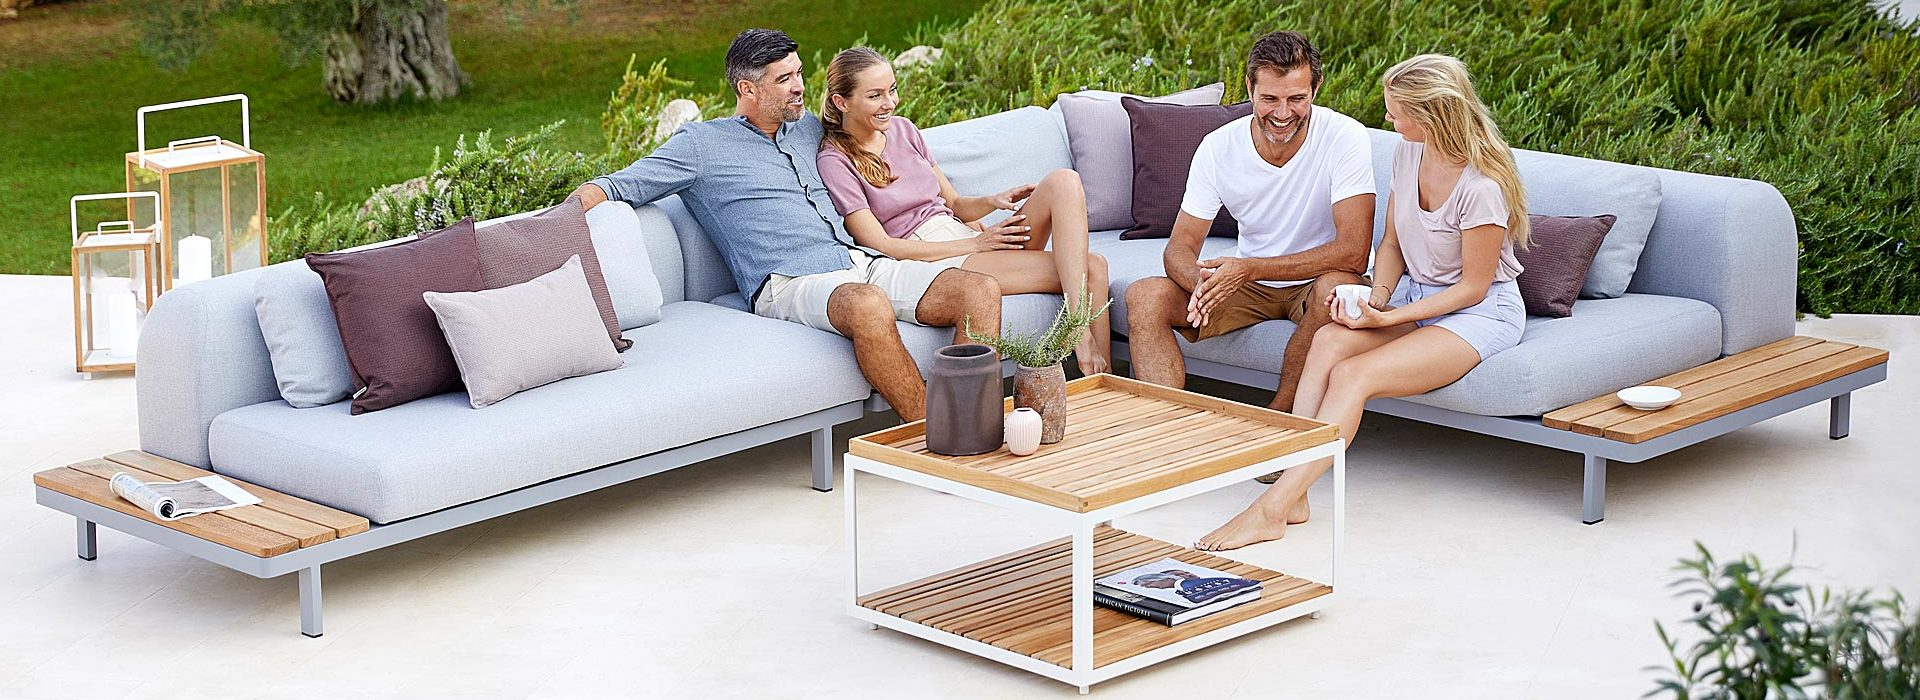 Two couples sitting on patio furniture, grass in background and patio lamps.